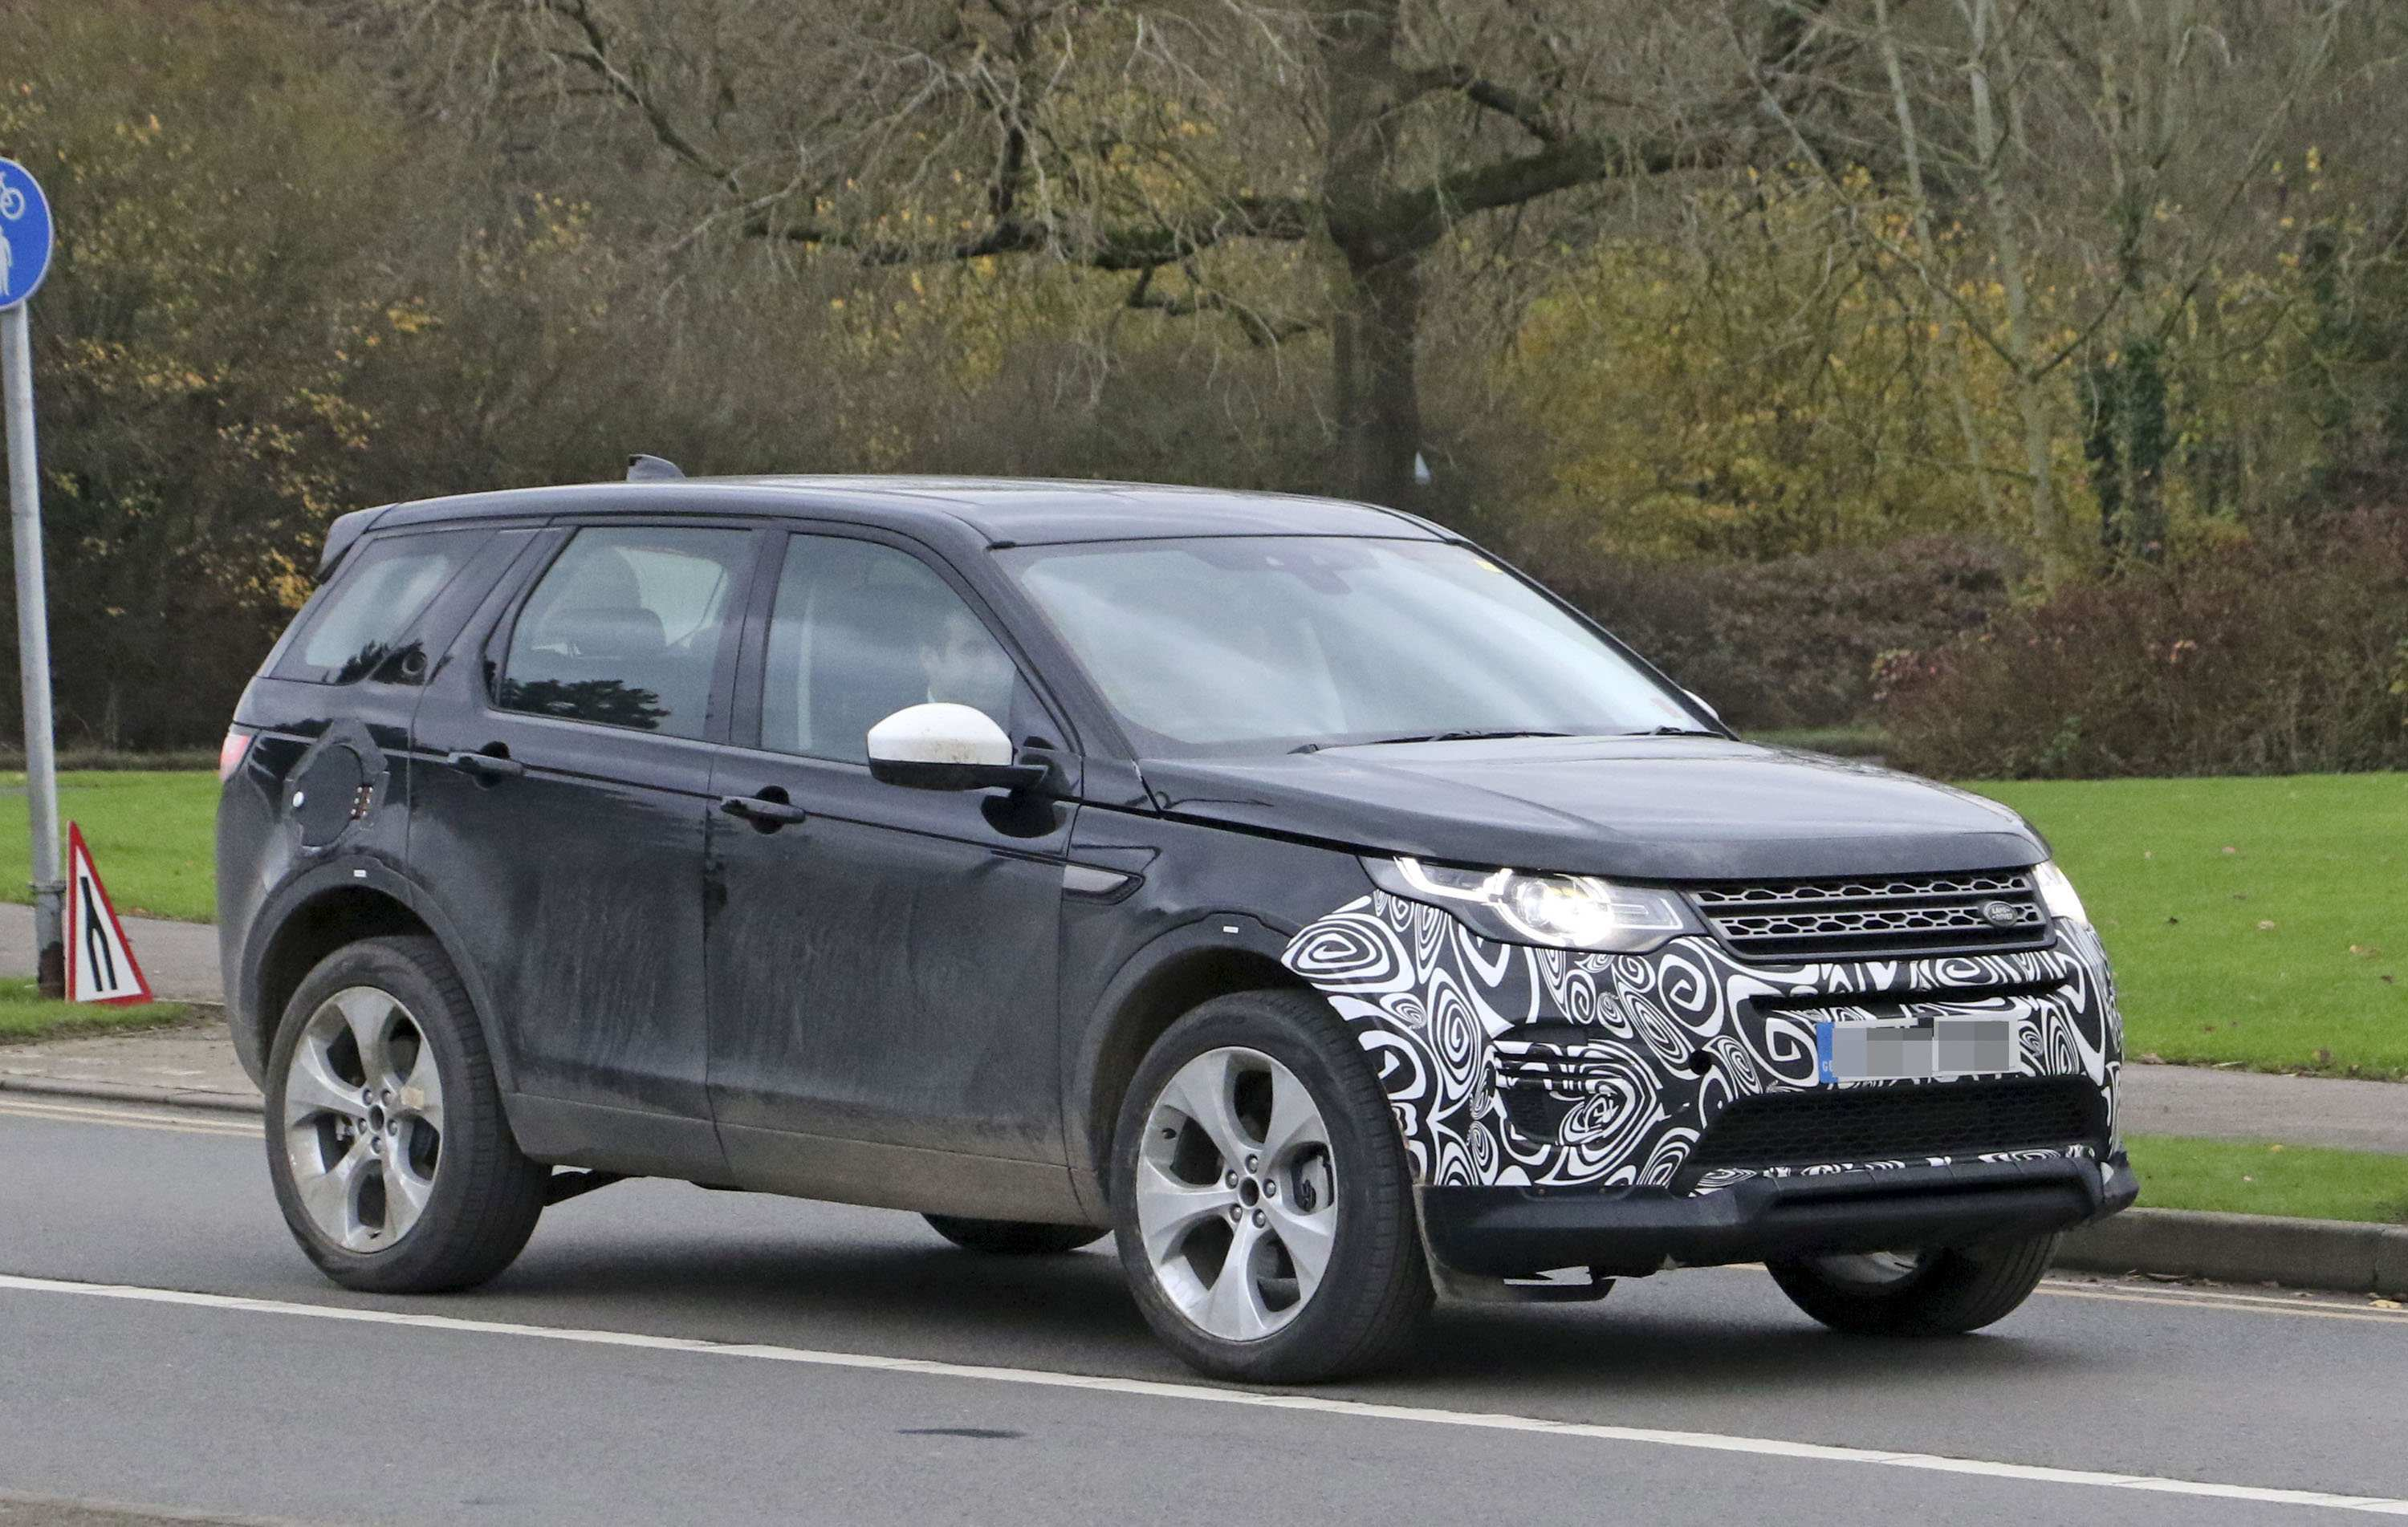 96 All New 2020 Land Rover LR4 Configurations with 2020 Land Rover LR4